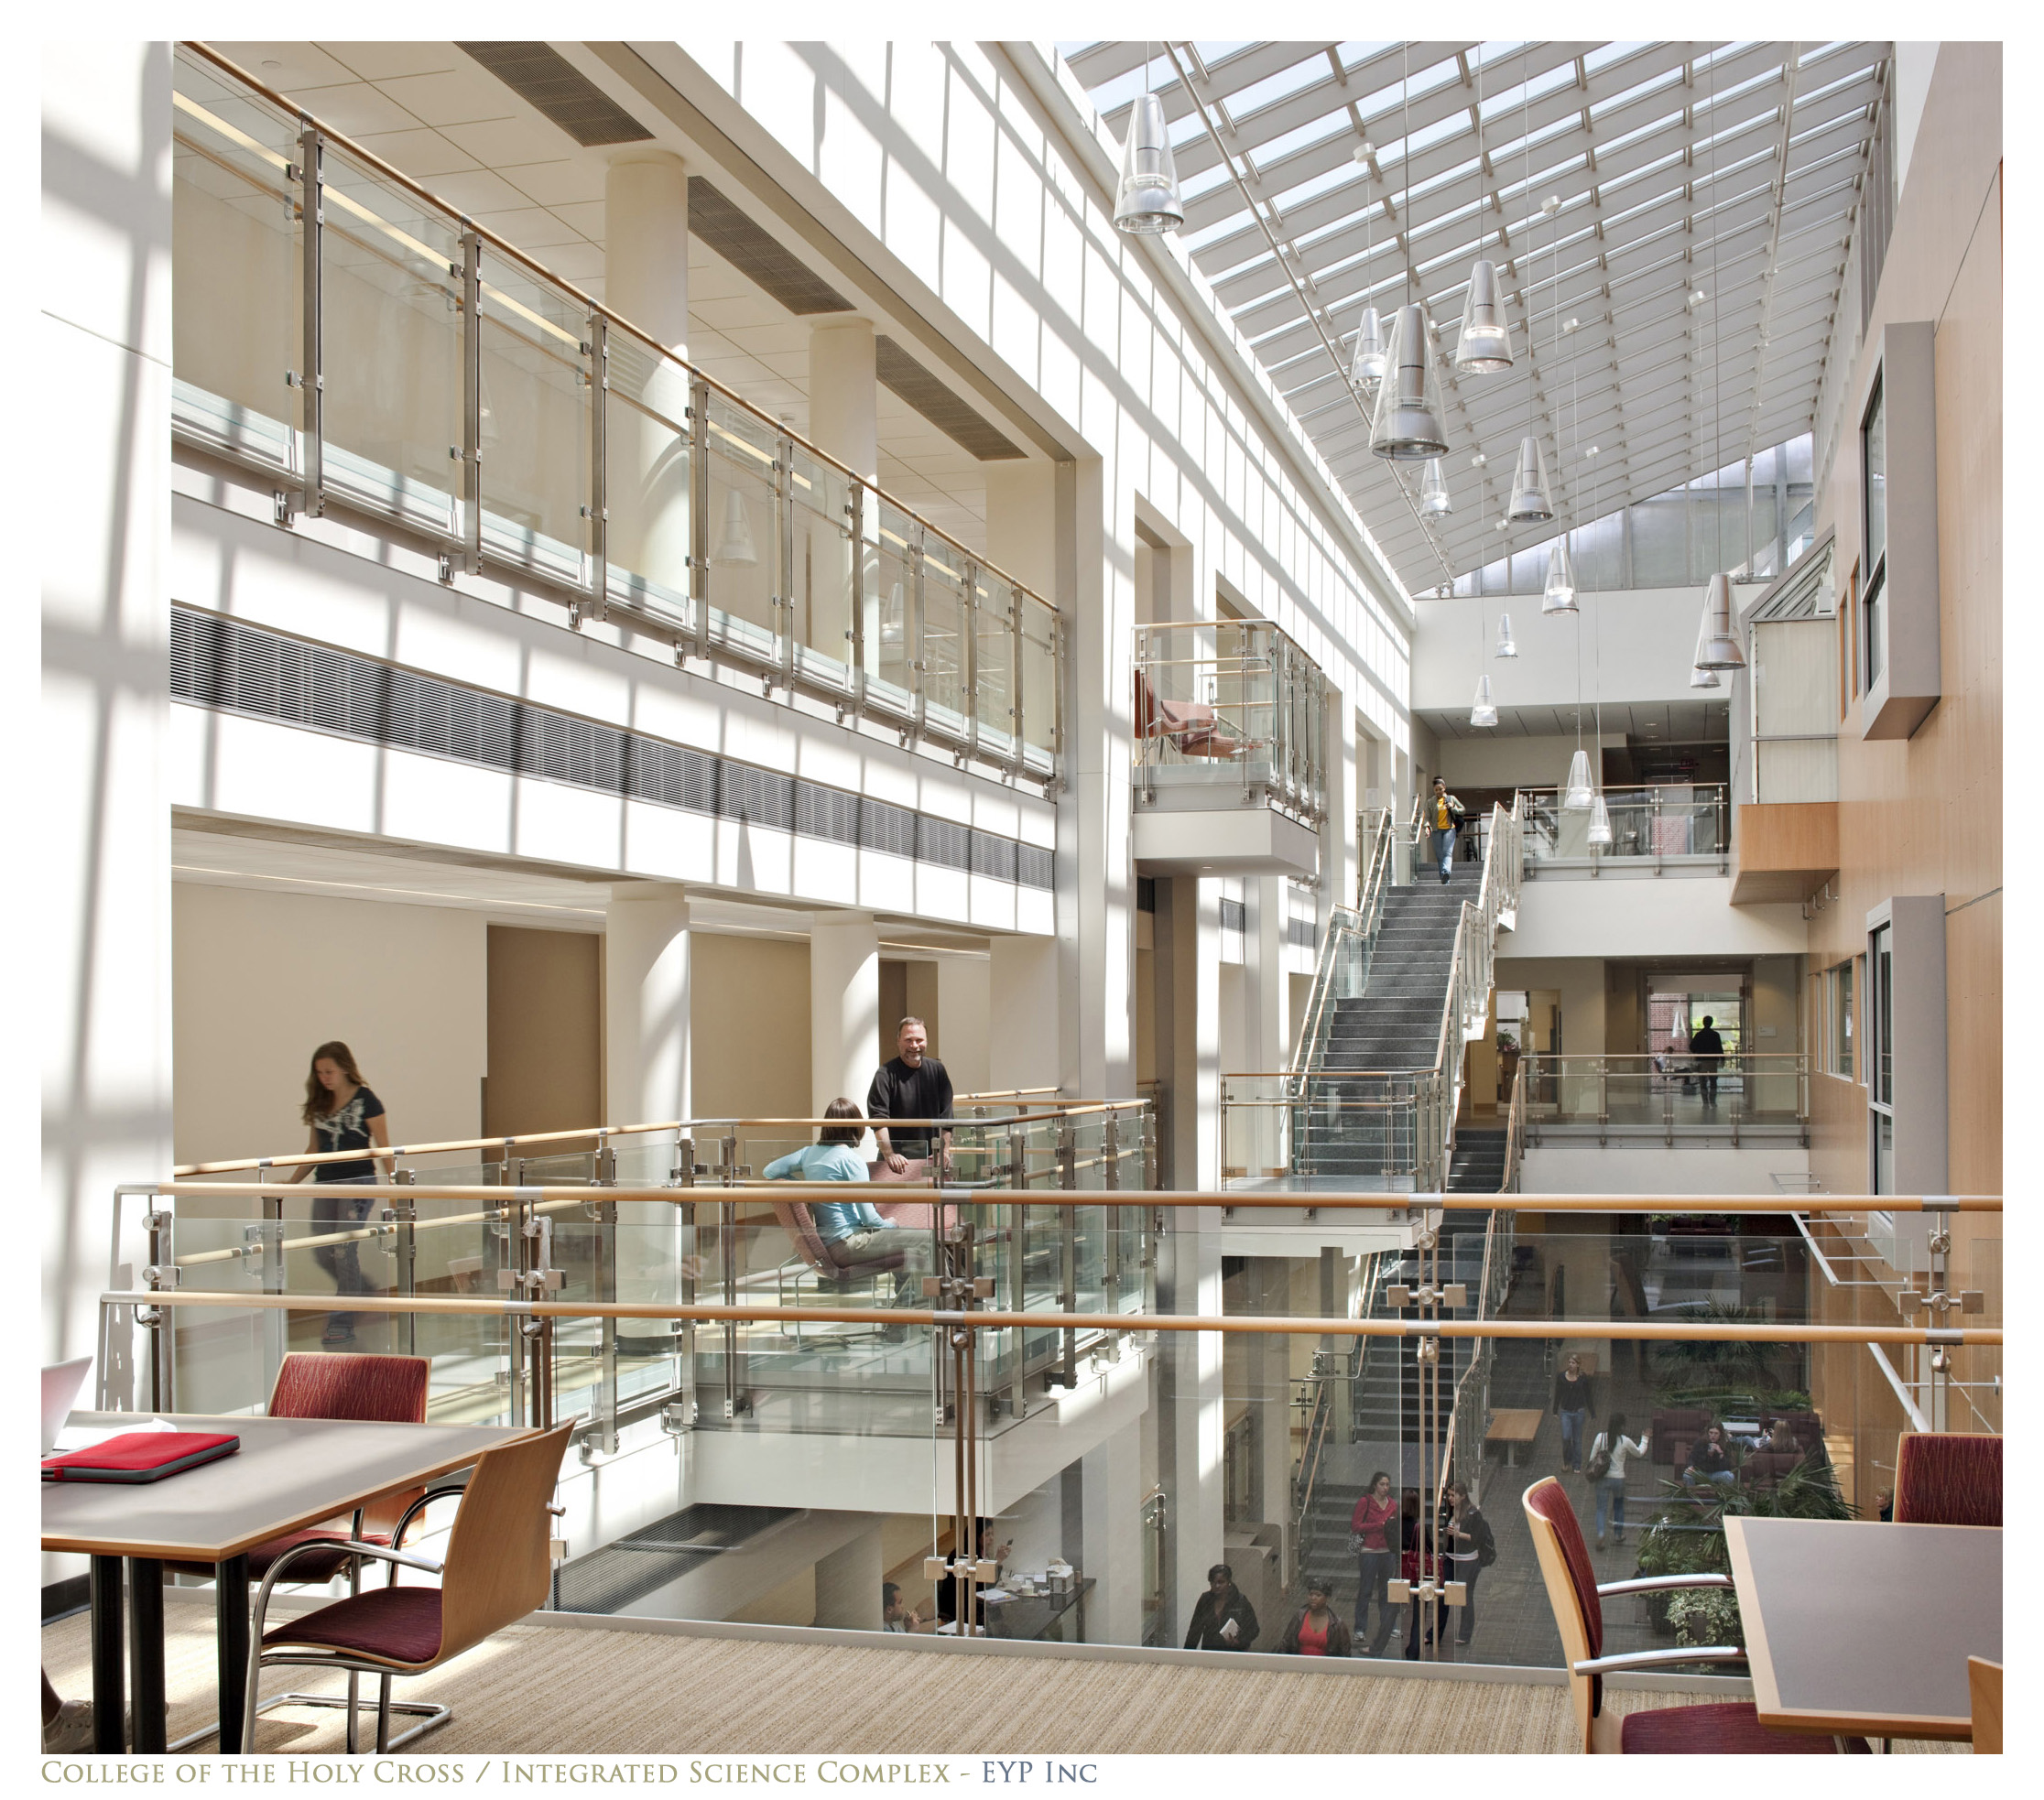 048_Robert-Benson-Photography-EYP-Architecture-Enginnering-Holy-Cross-Science-Complex-23.jpg